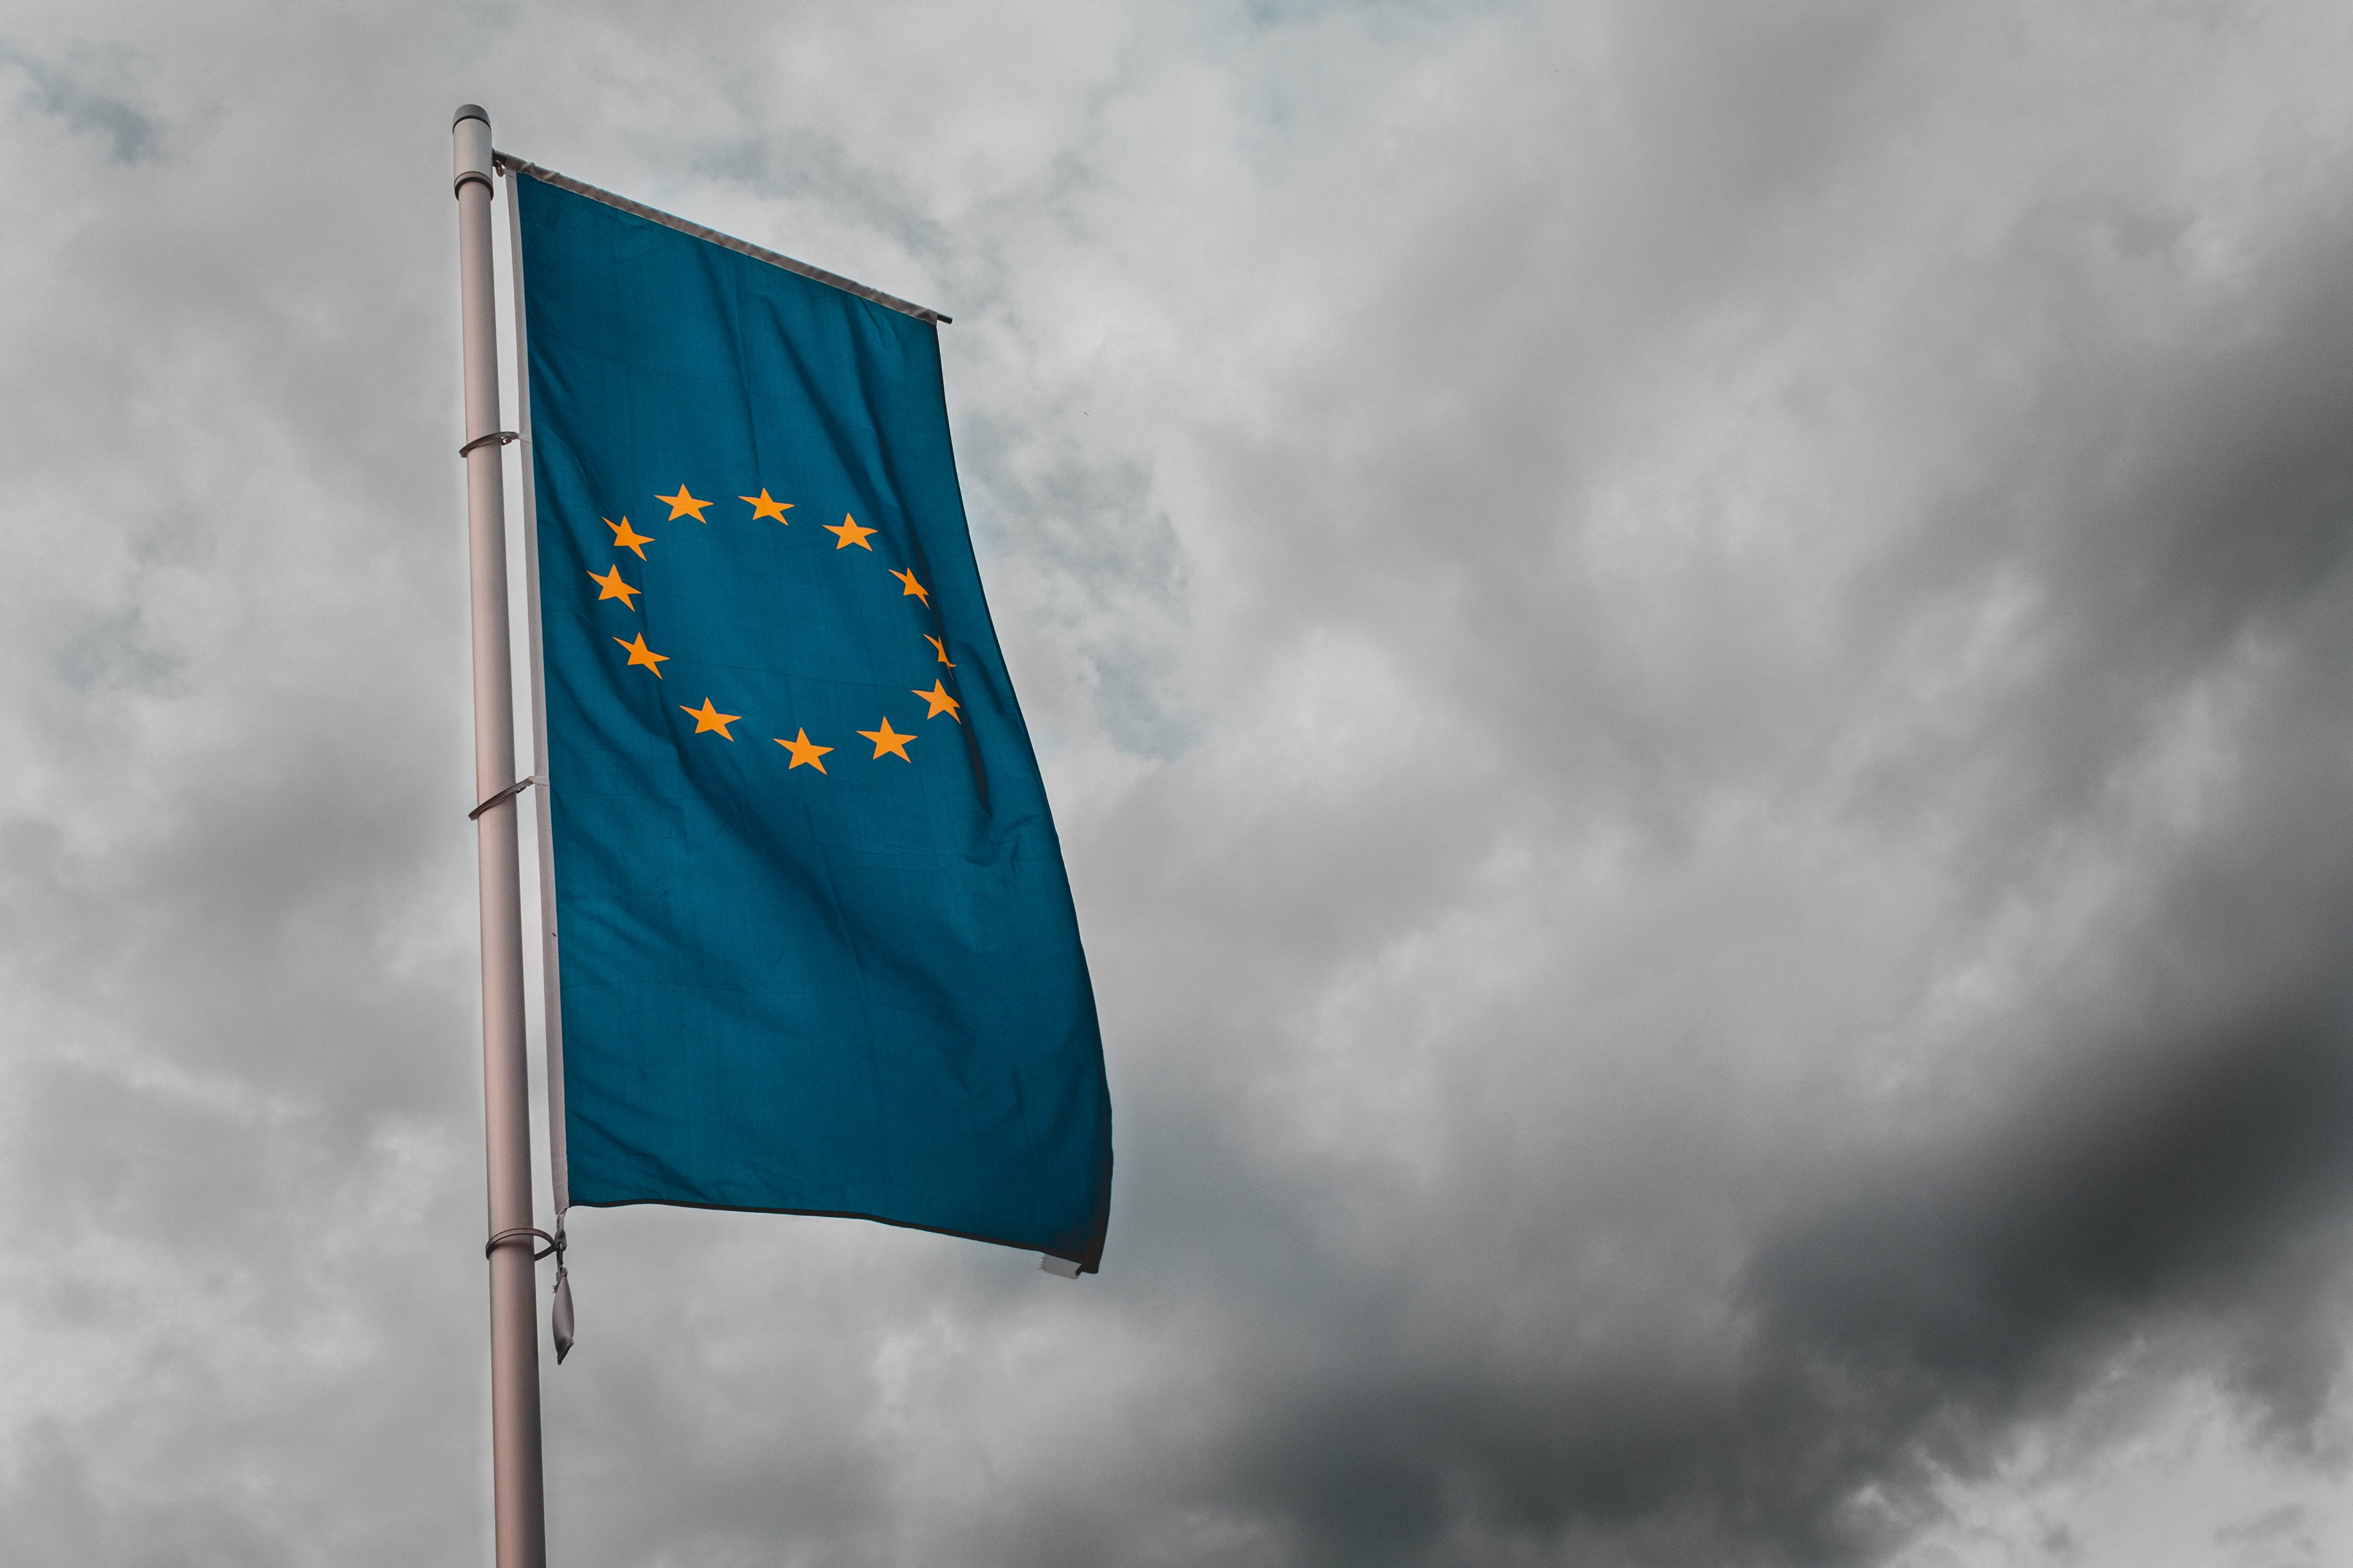 European Union flag hanging from a pole